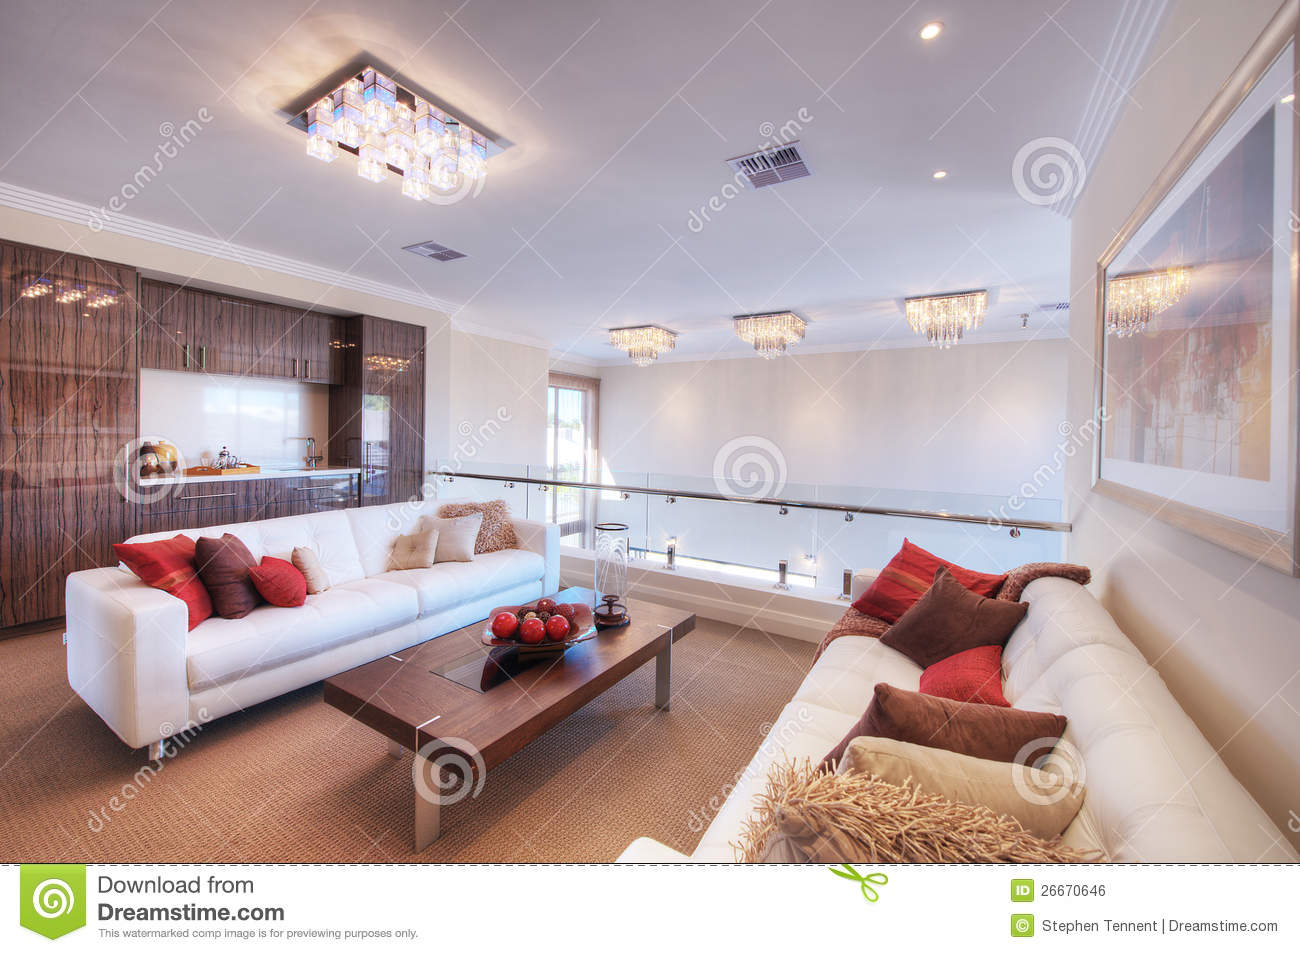 Large lounge living room with white leather sofa and chairs